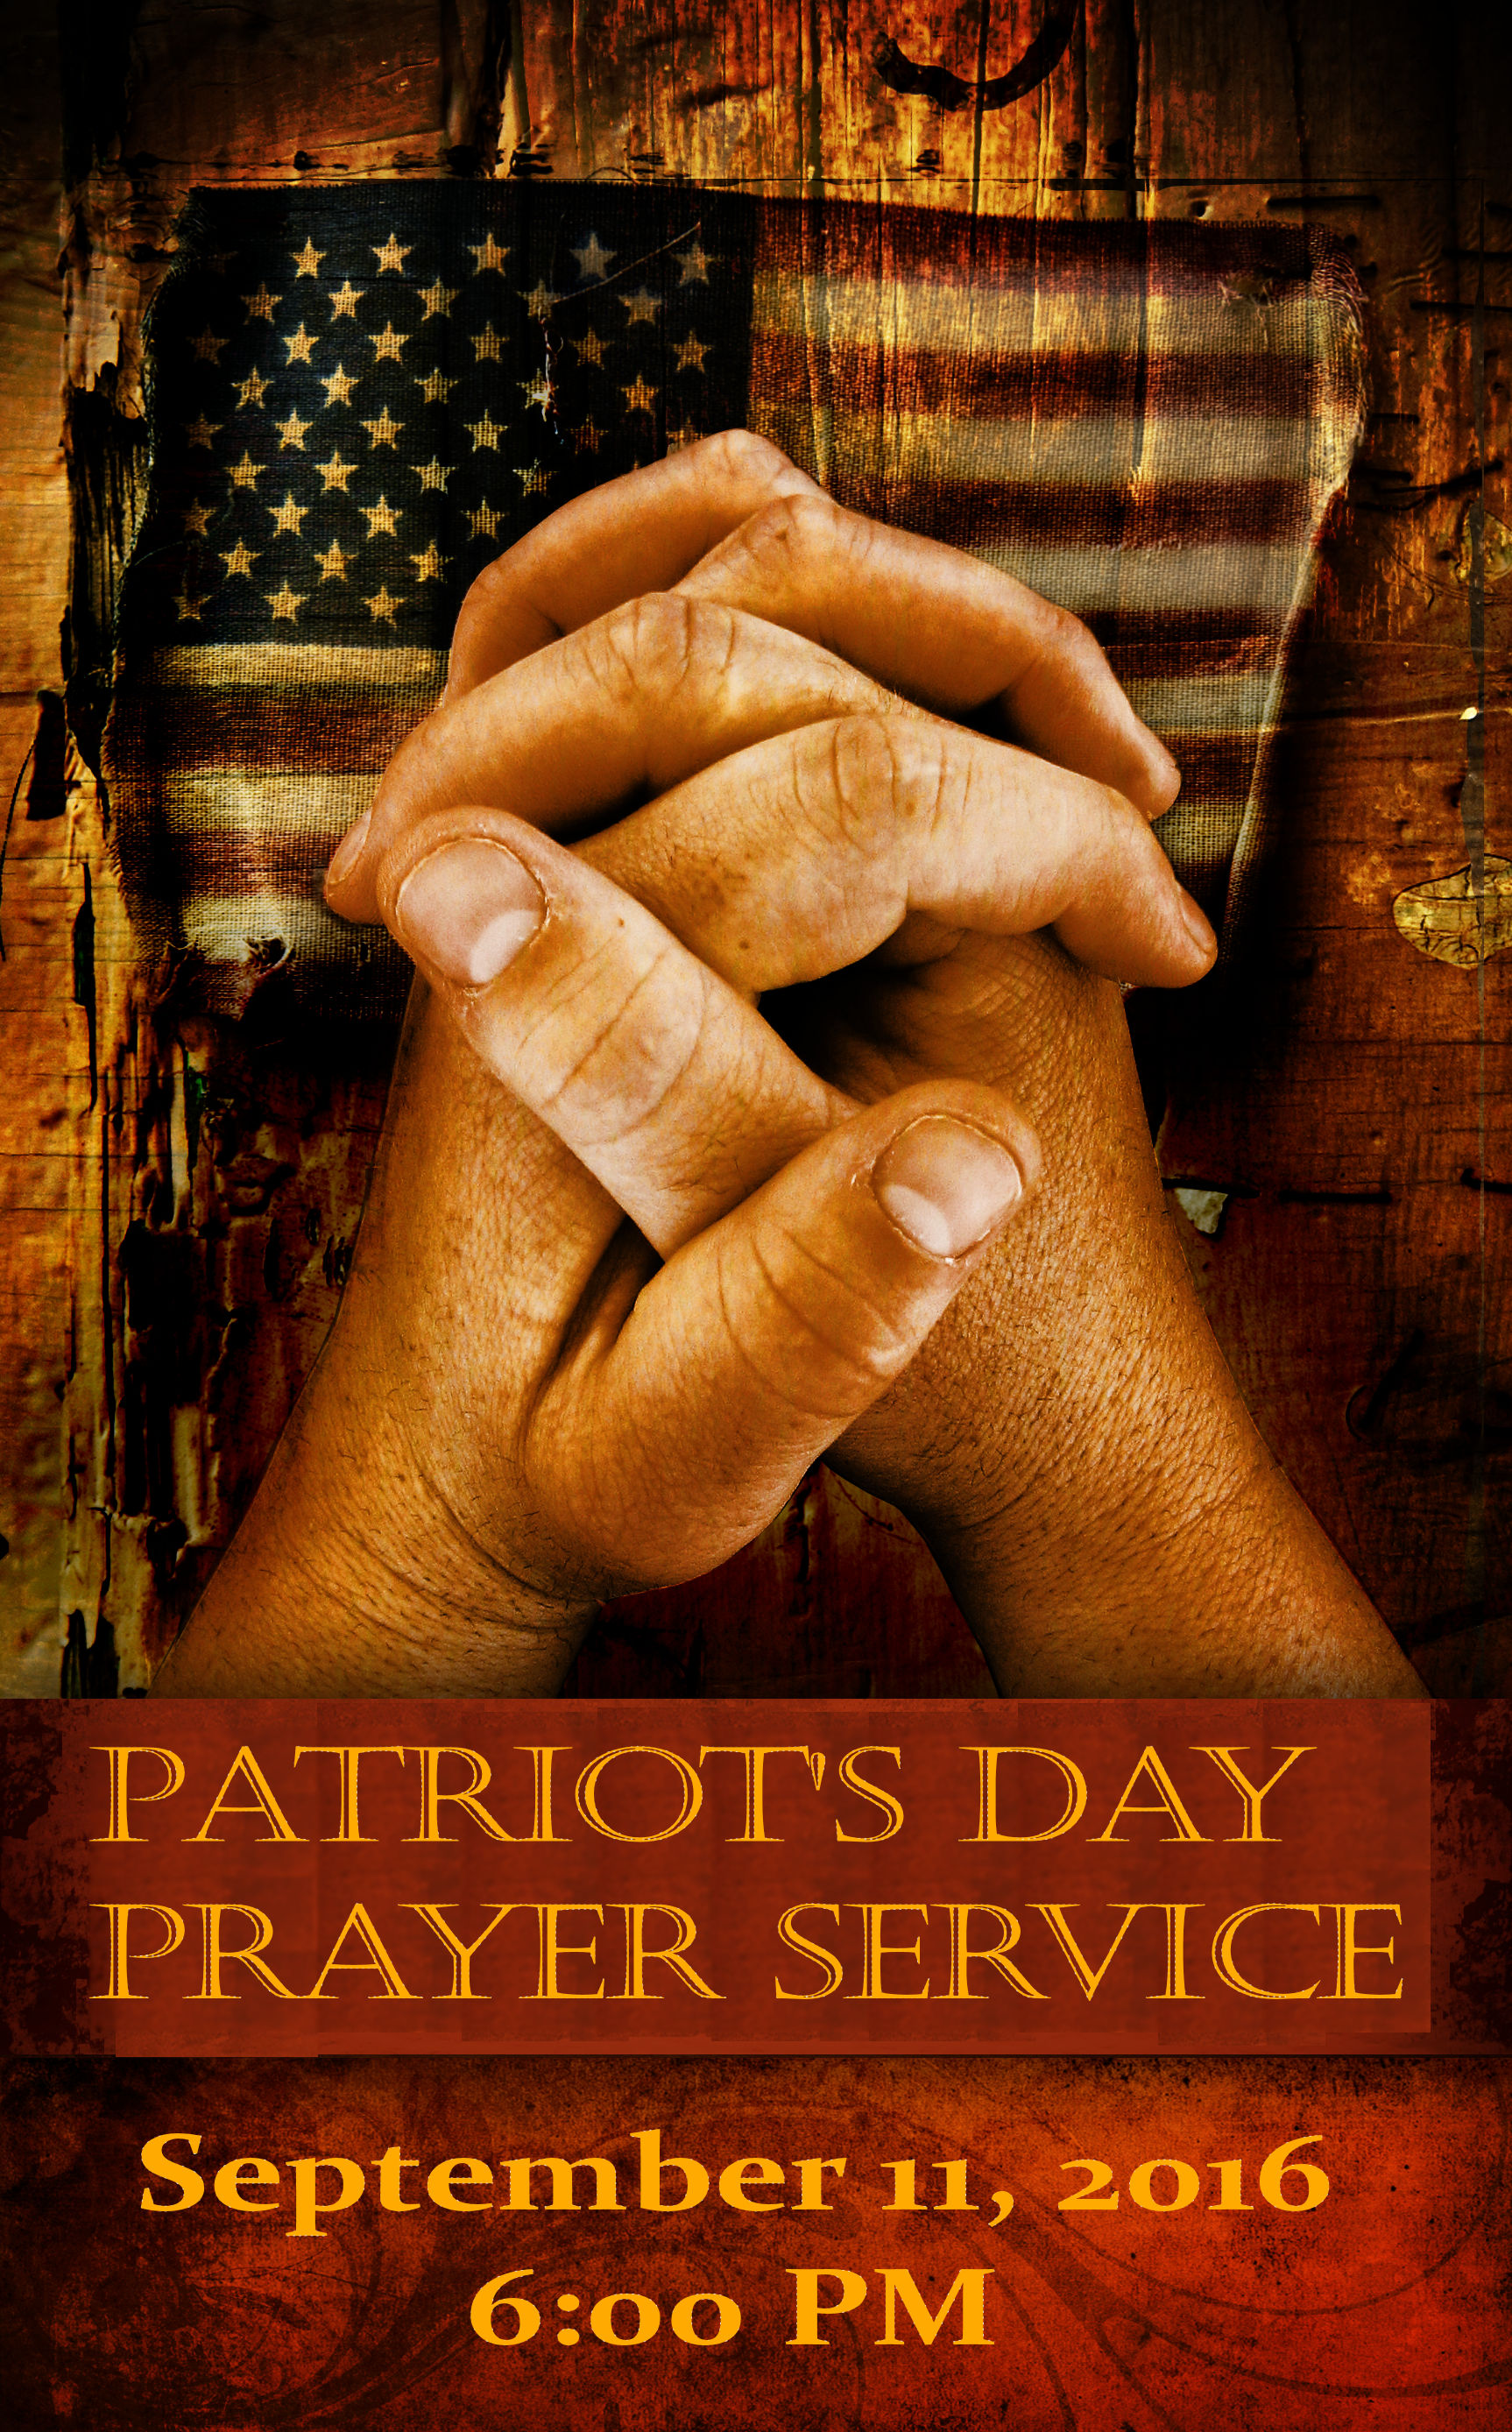 Patriot's Day Prayer Service